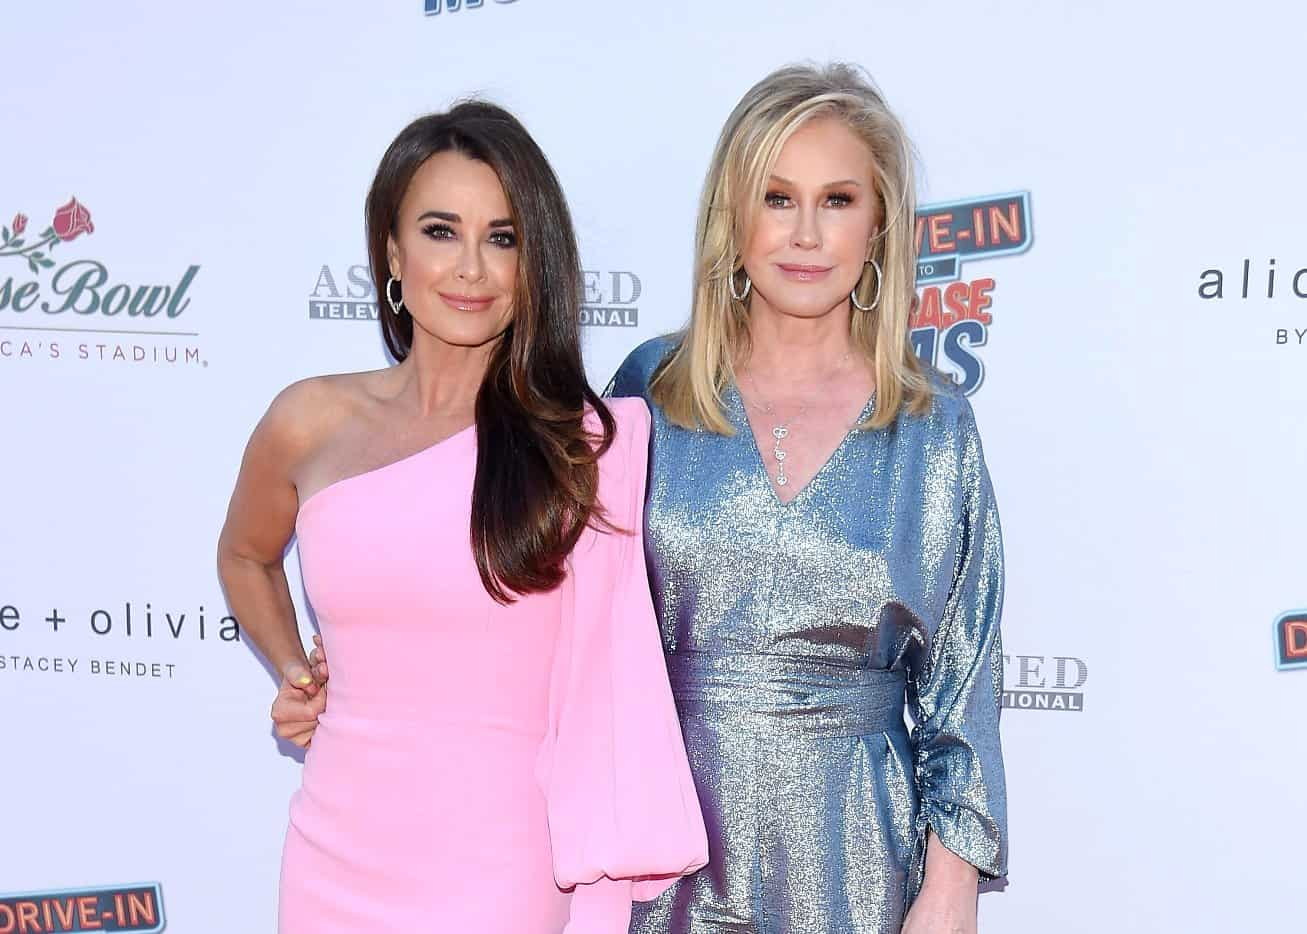 """RHOBH: Kathy Hilton Reflects On Feud With Sister Kyle Richards, Admits It """"Never Would've Happened"""" If Mom Was Alive"""